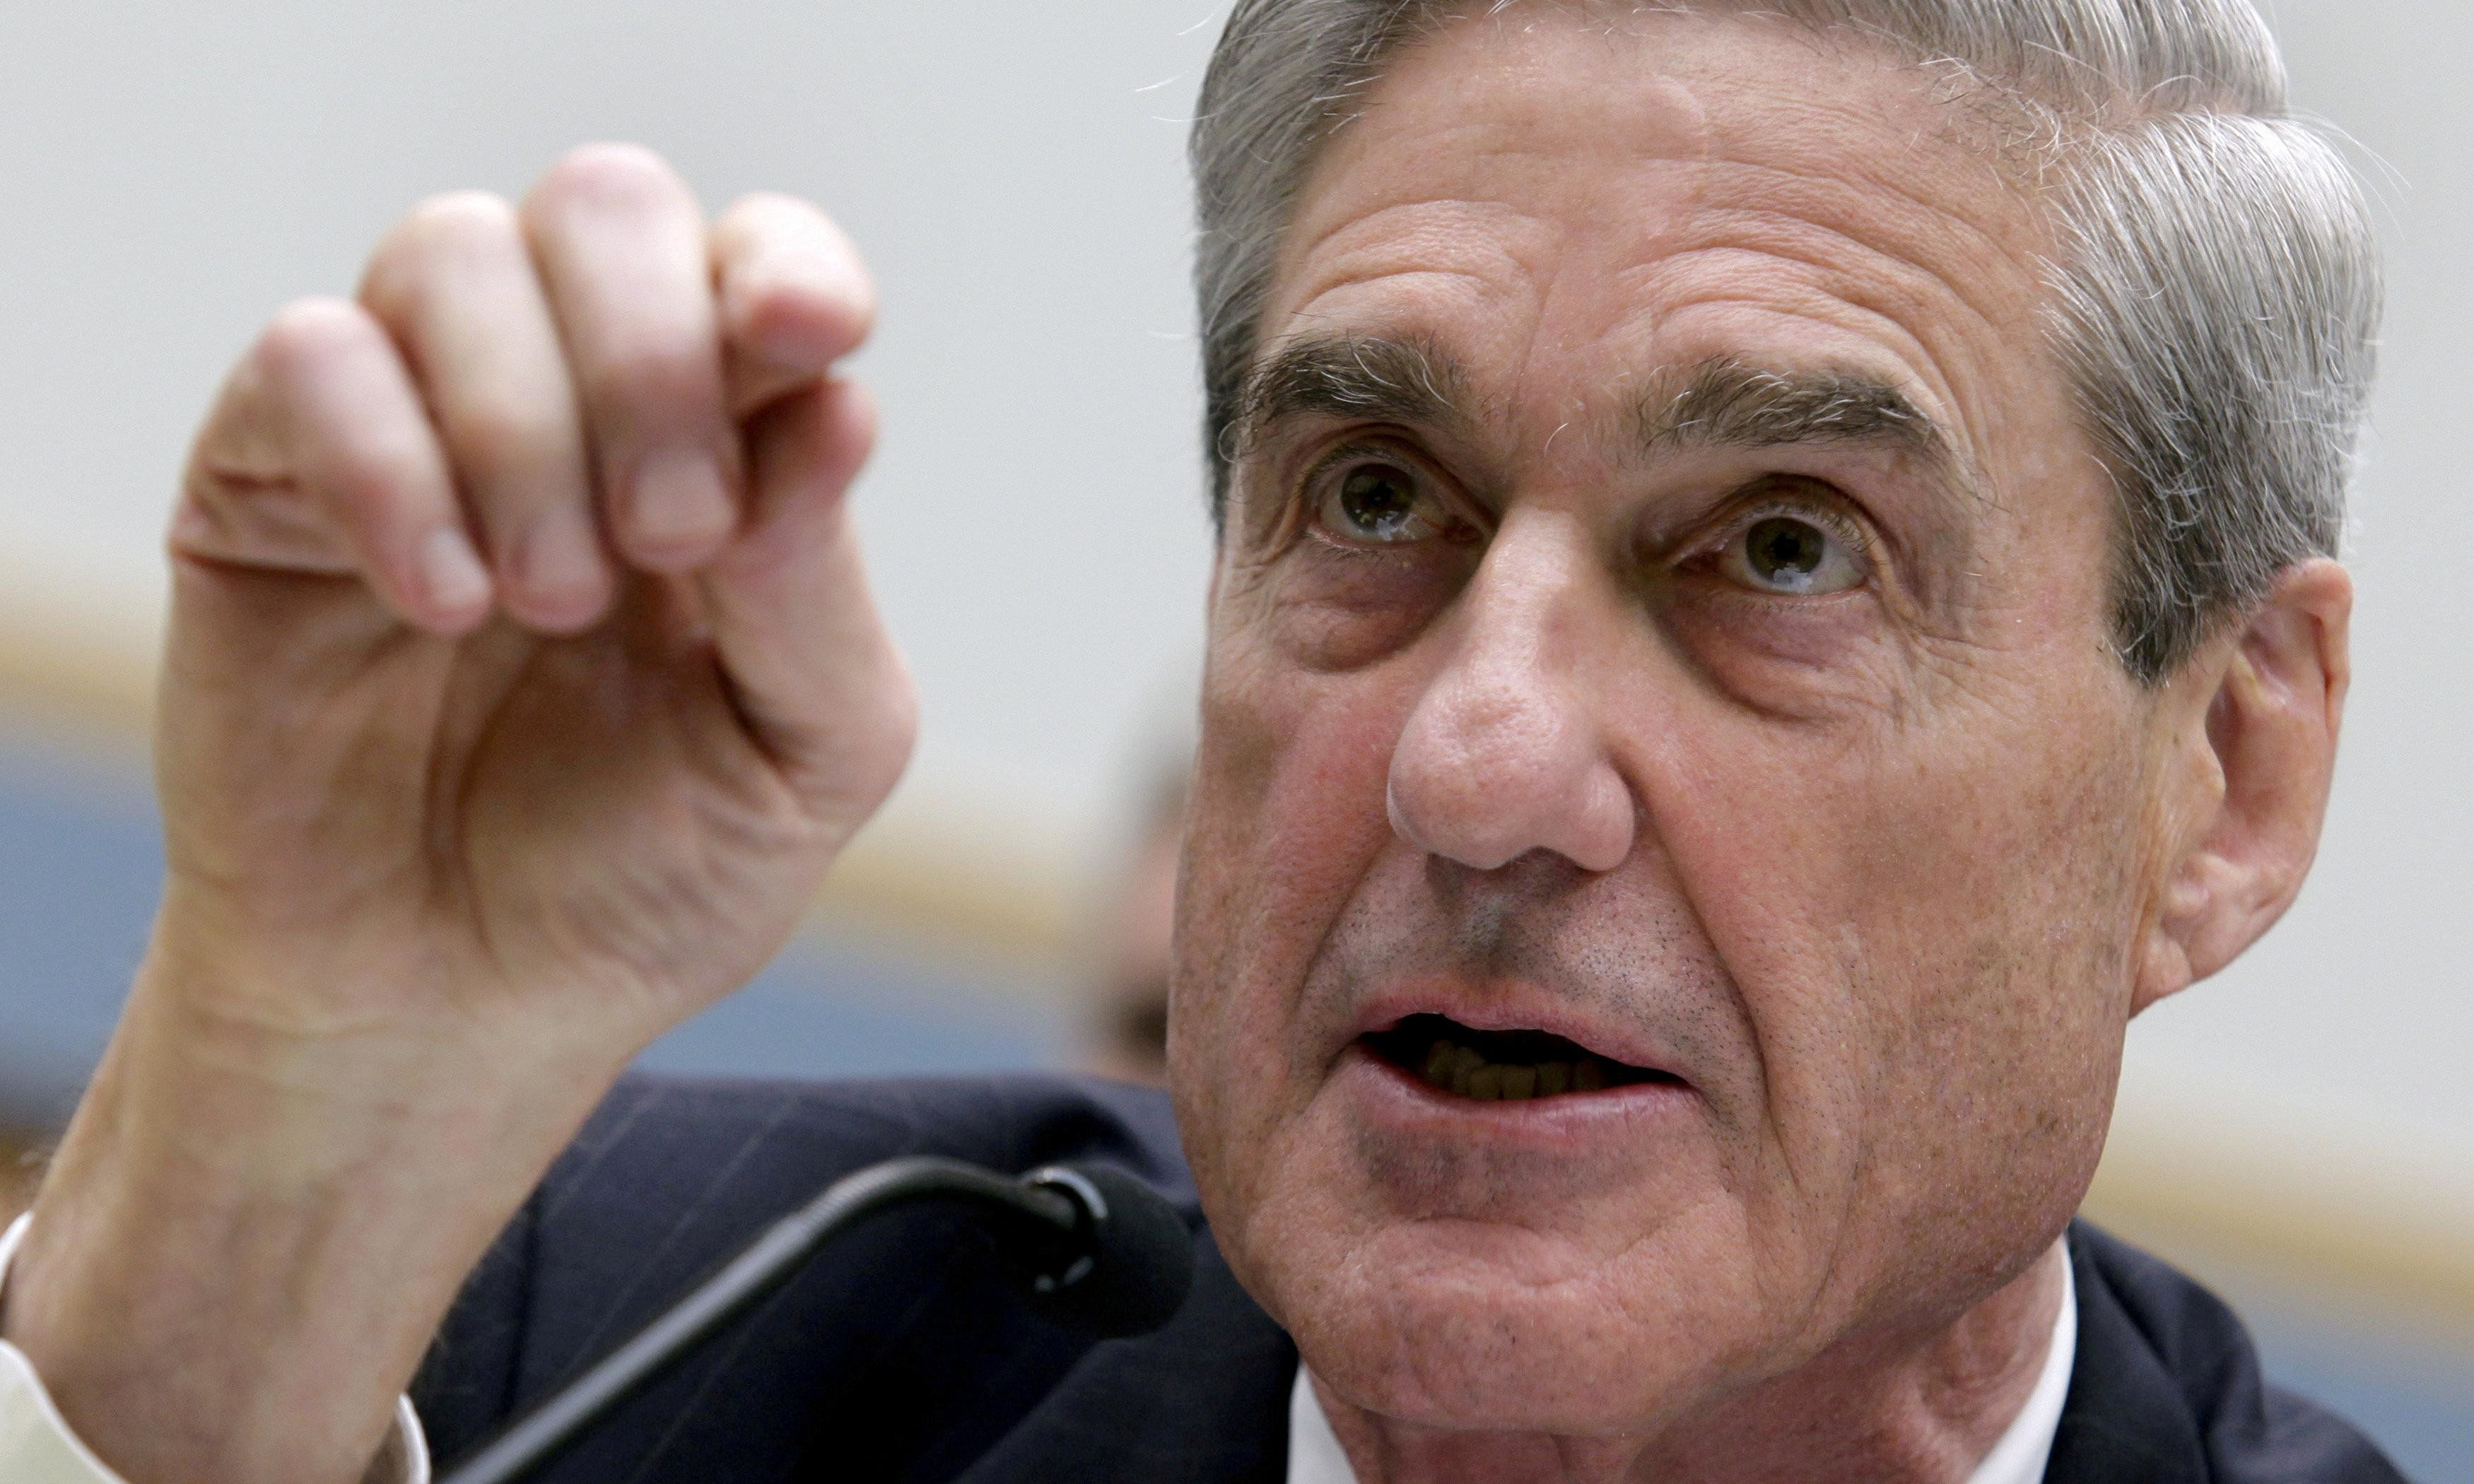 In 2018 Robert Mueller has charged 34 new defendants, netted five guilty pleas and clawed back $48m through tax fraud cases.